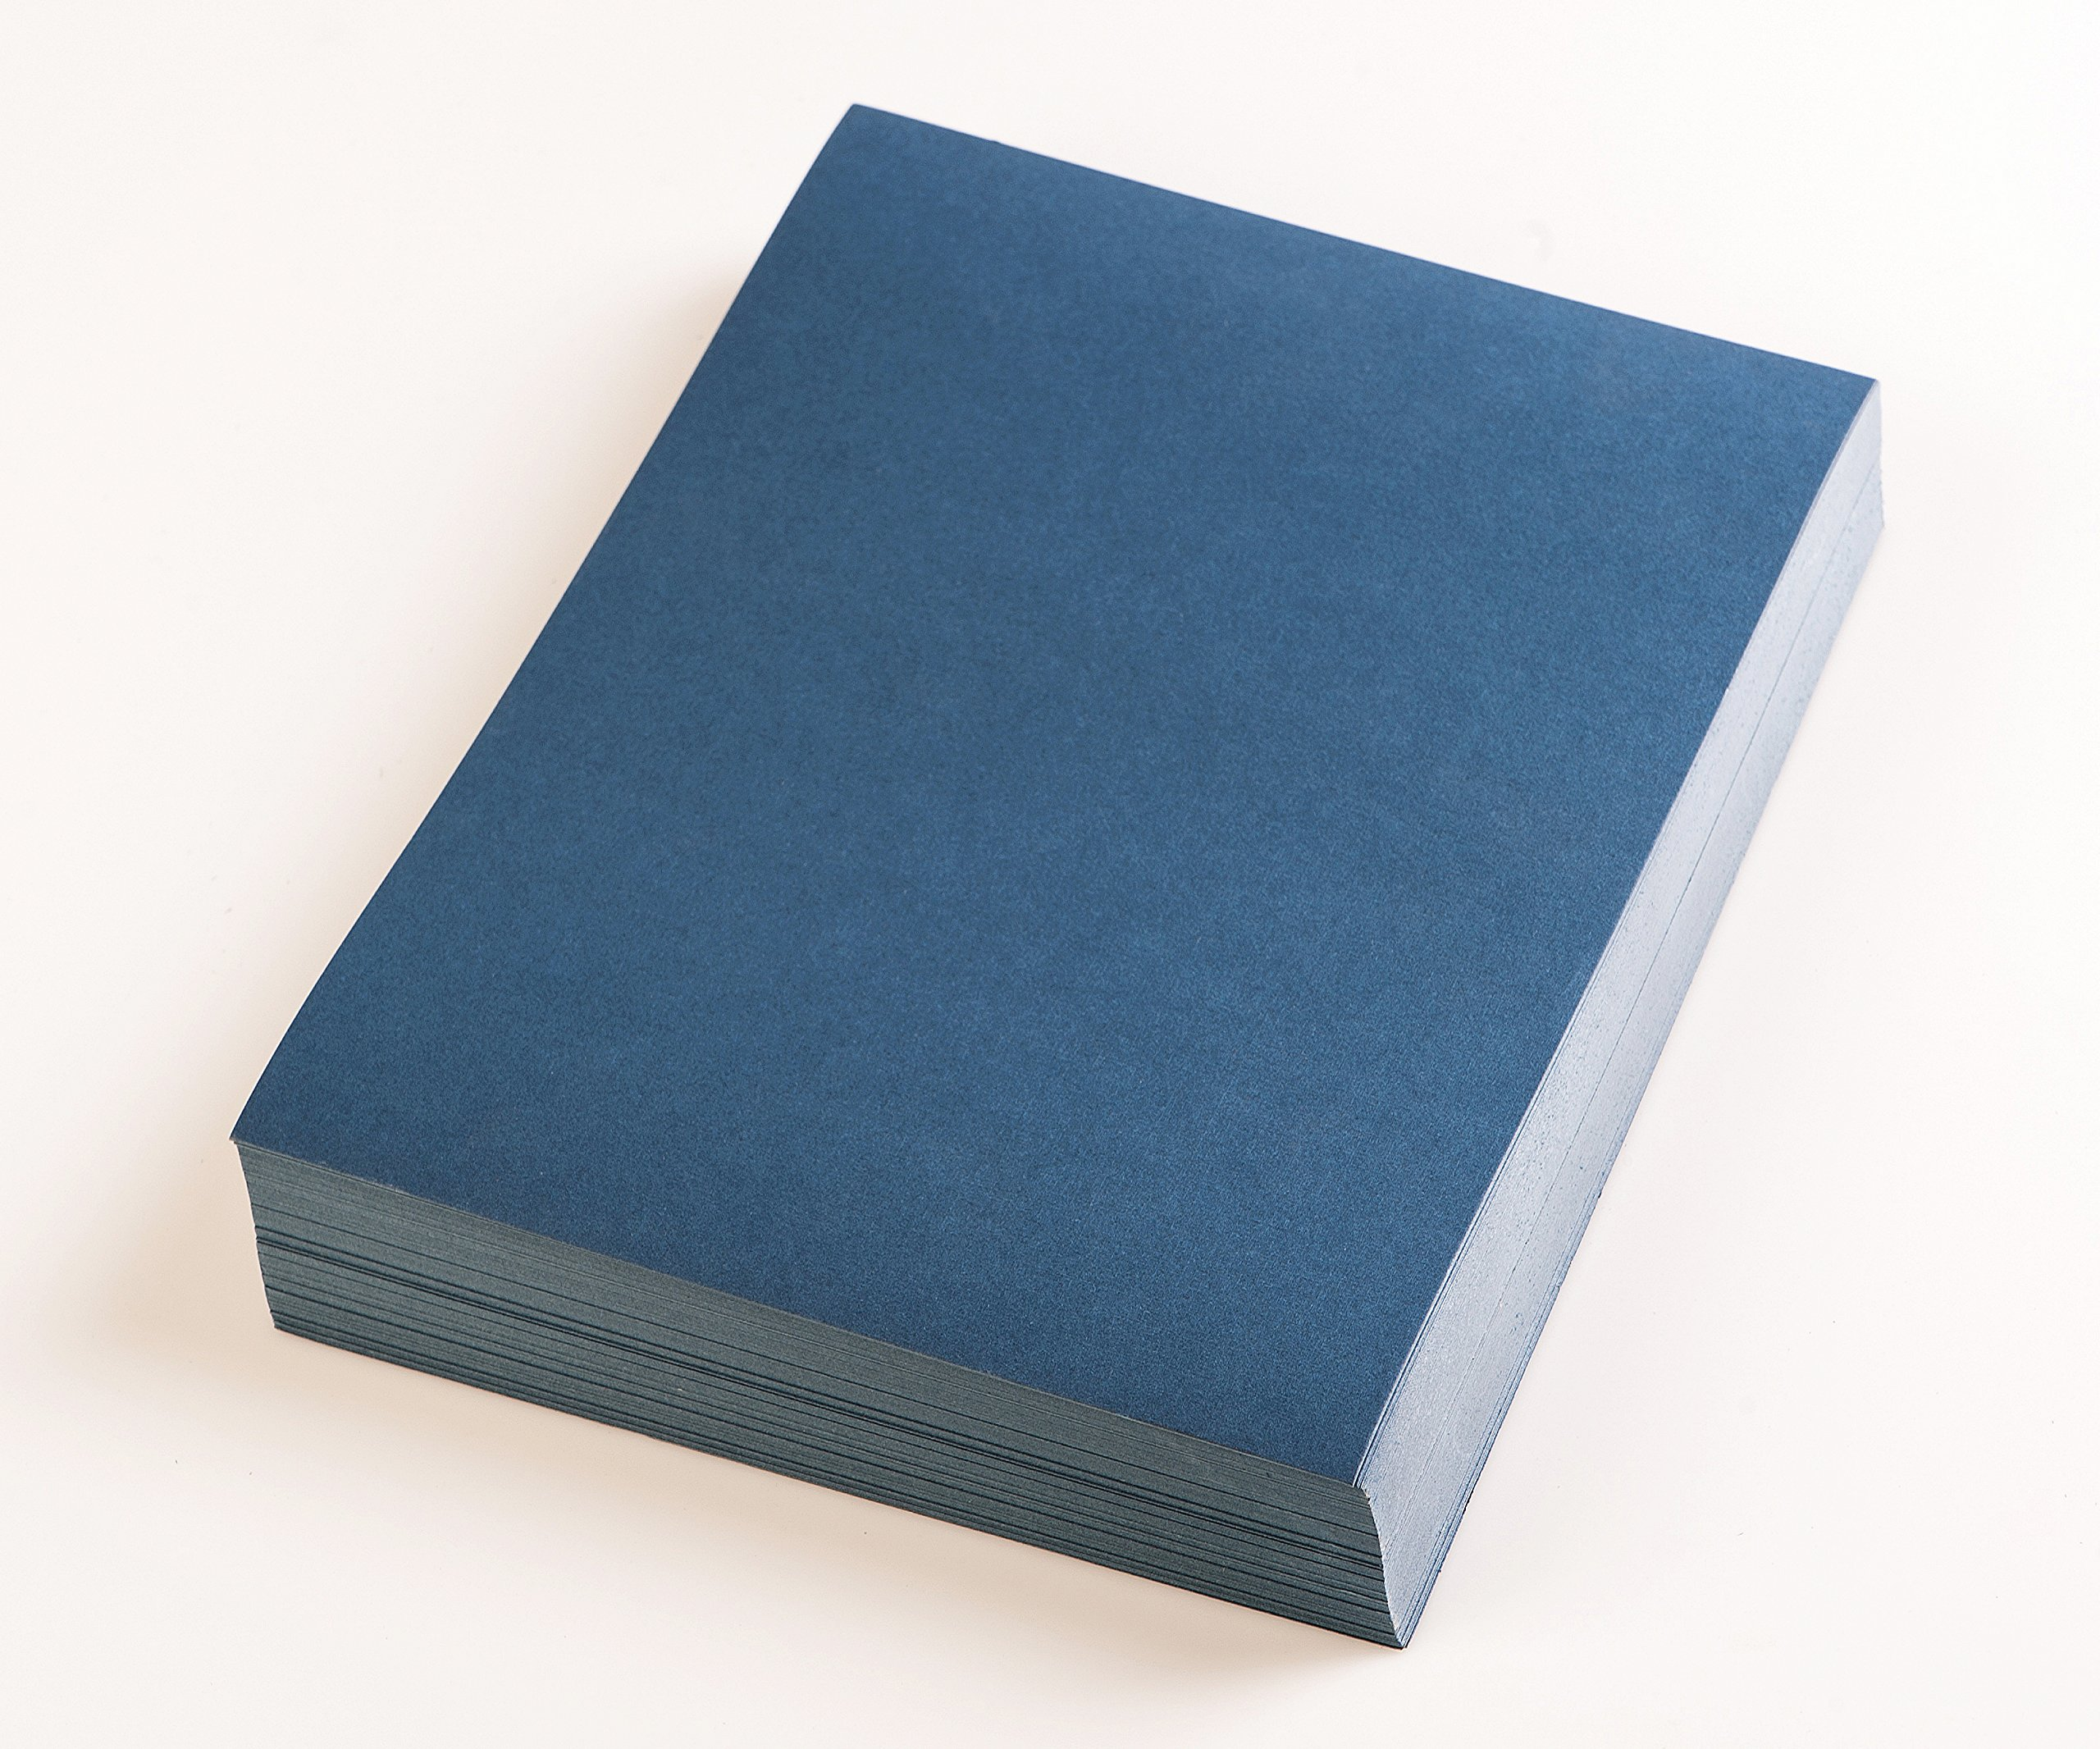 BNC Letter Size Linen Texture Presentation Covers Navy Blue Pack of 100 by BNC Office Supply (Image #3)